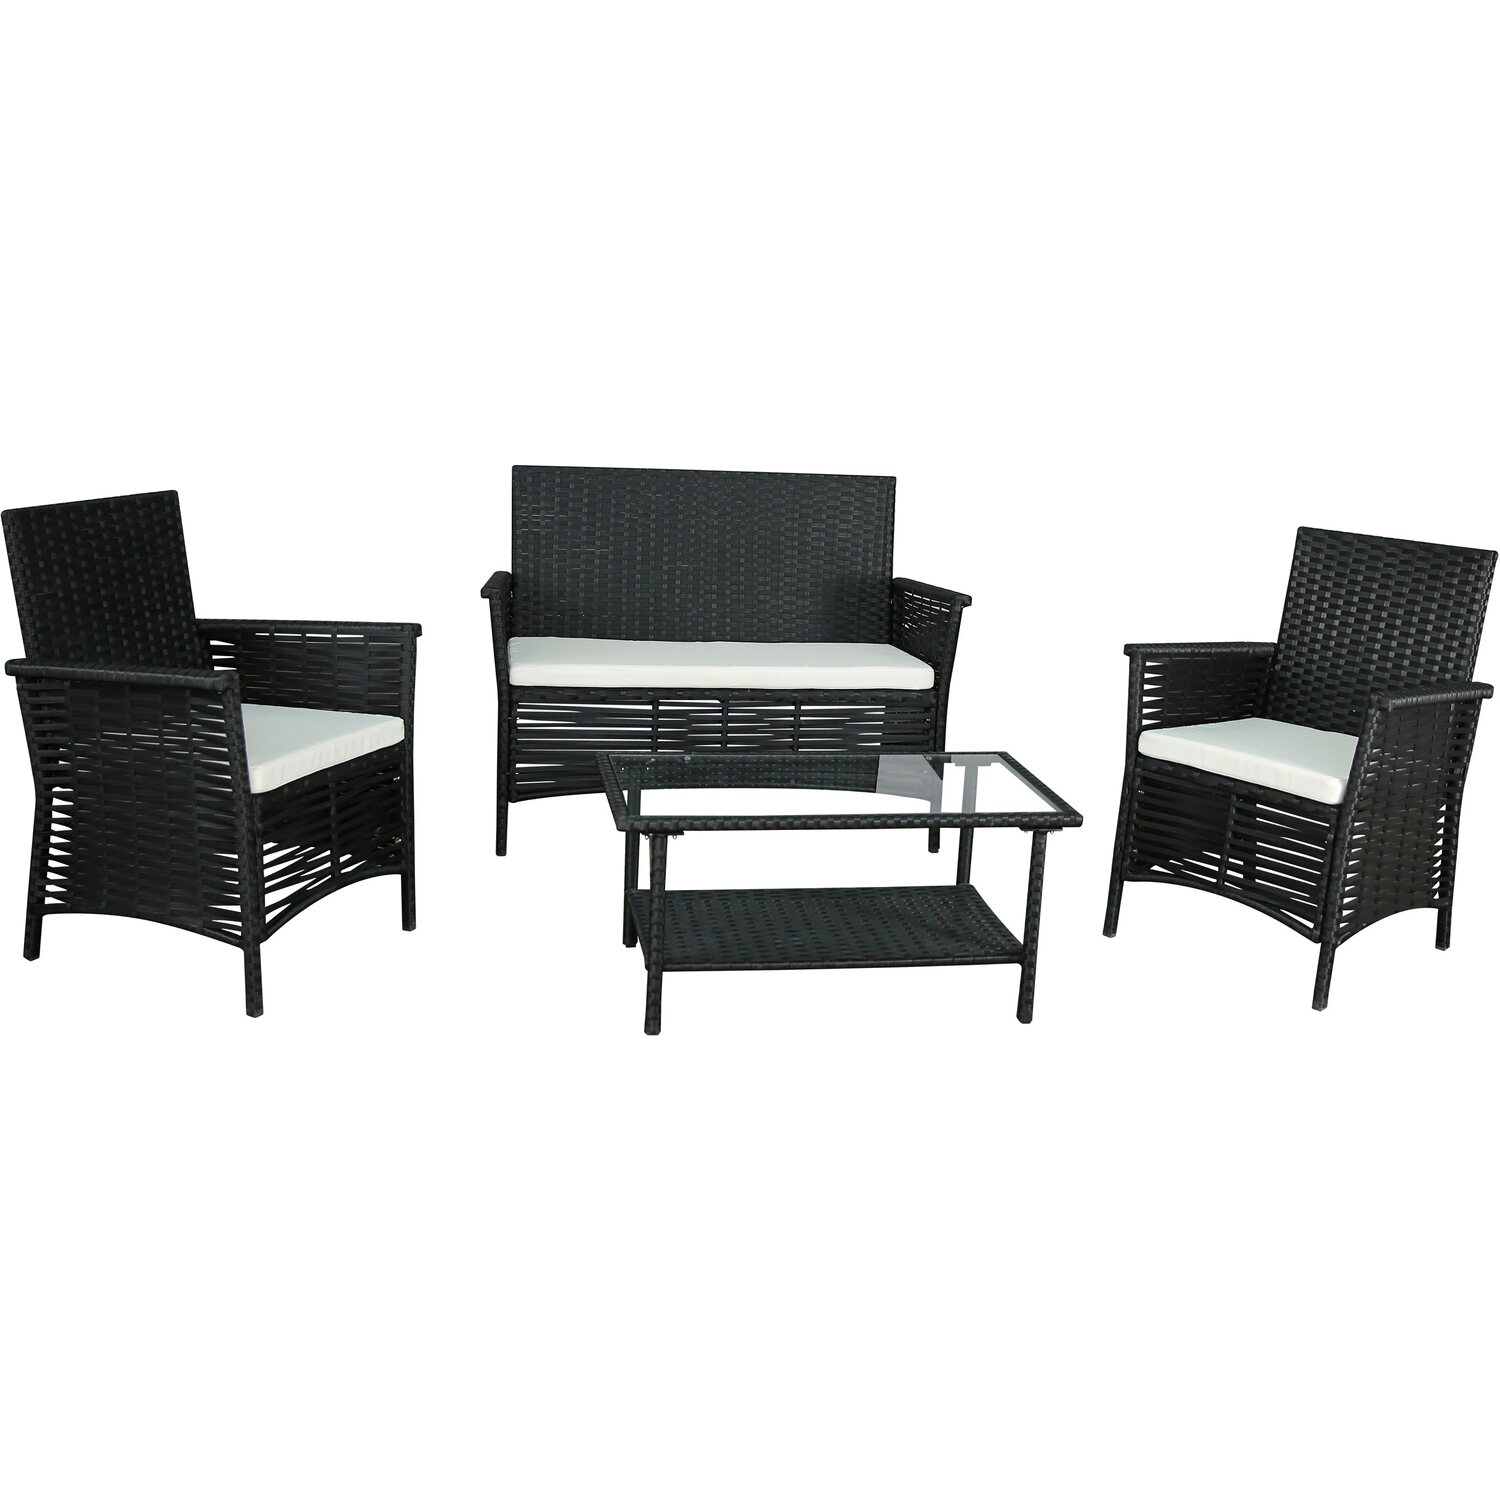 gartenfreude sitzgruppe polyrattan 7 tlg schwarz kaufen. Black Bedroom Furniture Sets. Home Design Ideas